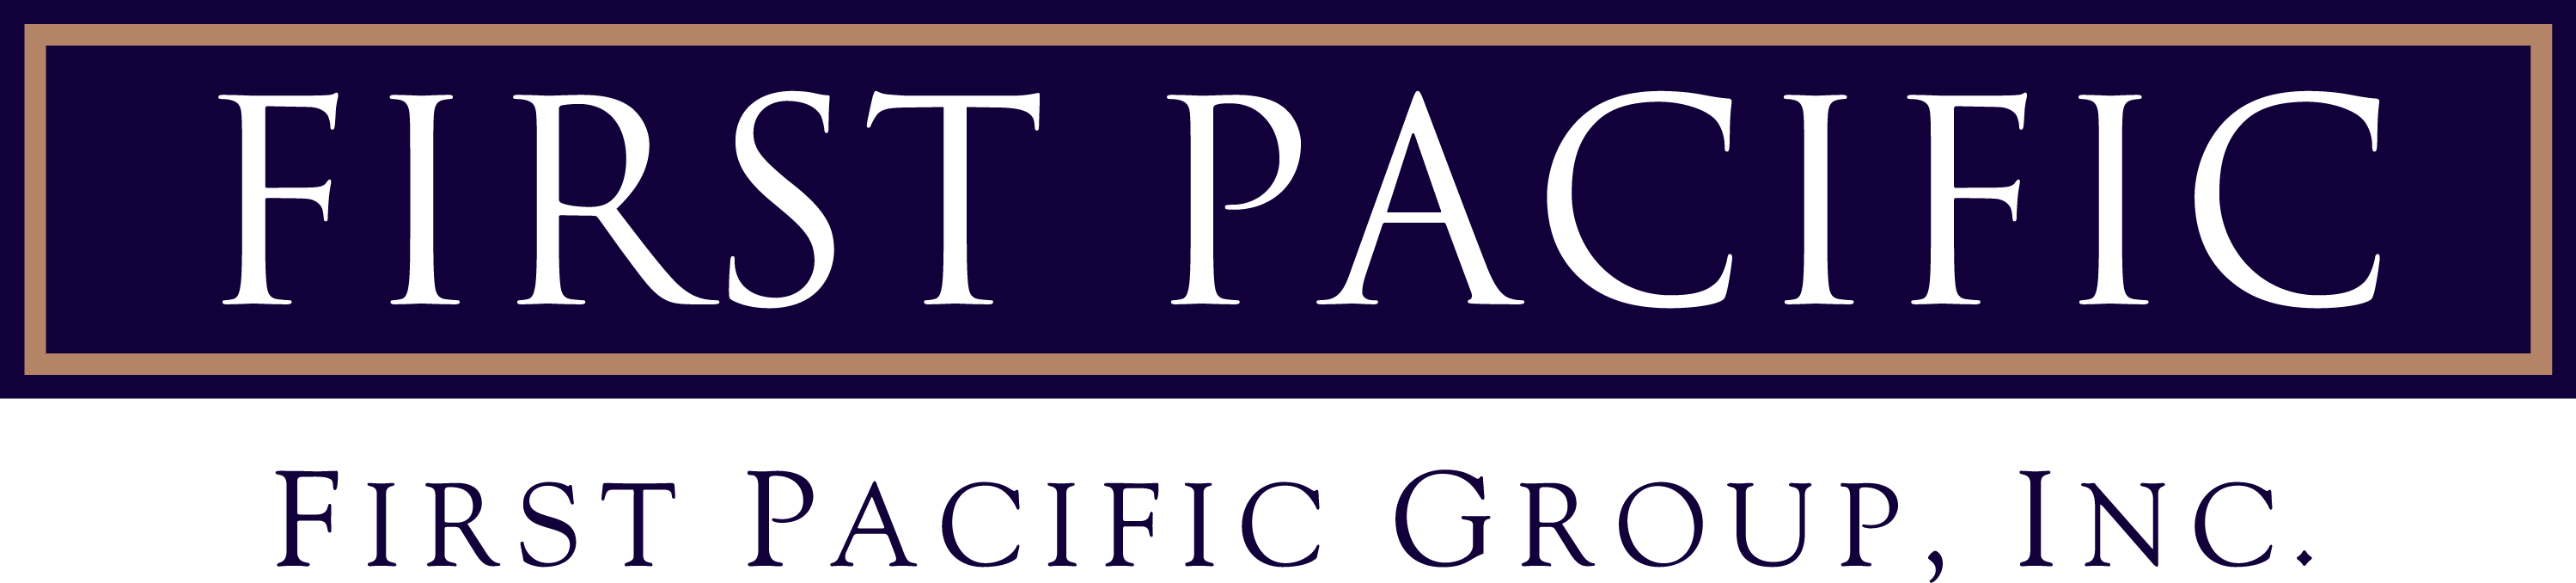 First Pacific Group Logo